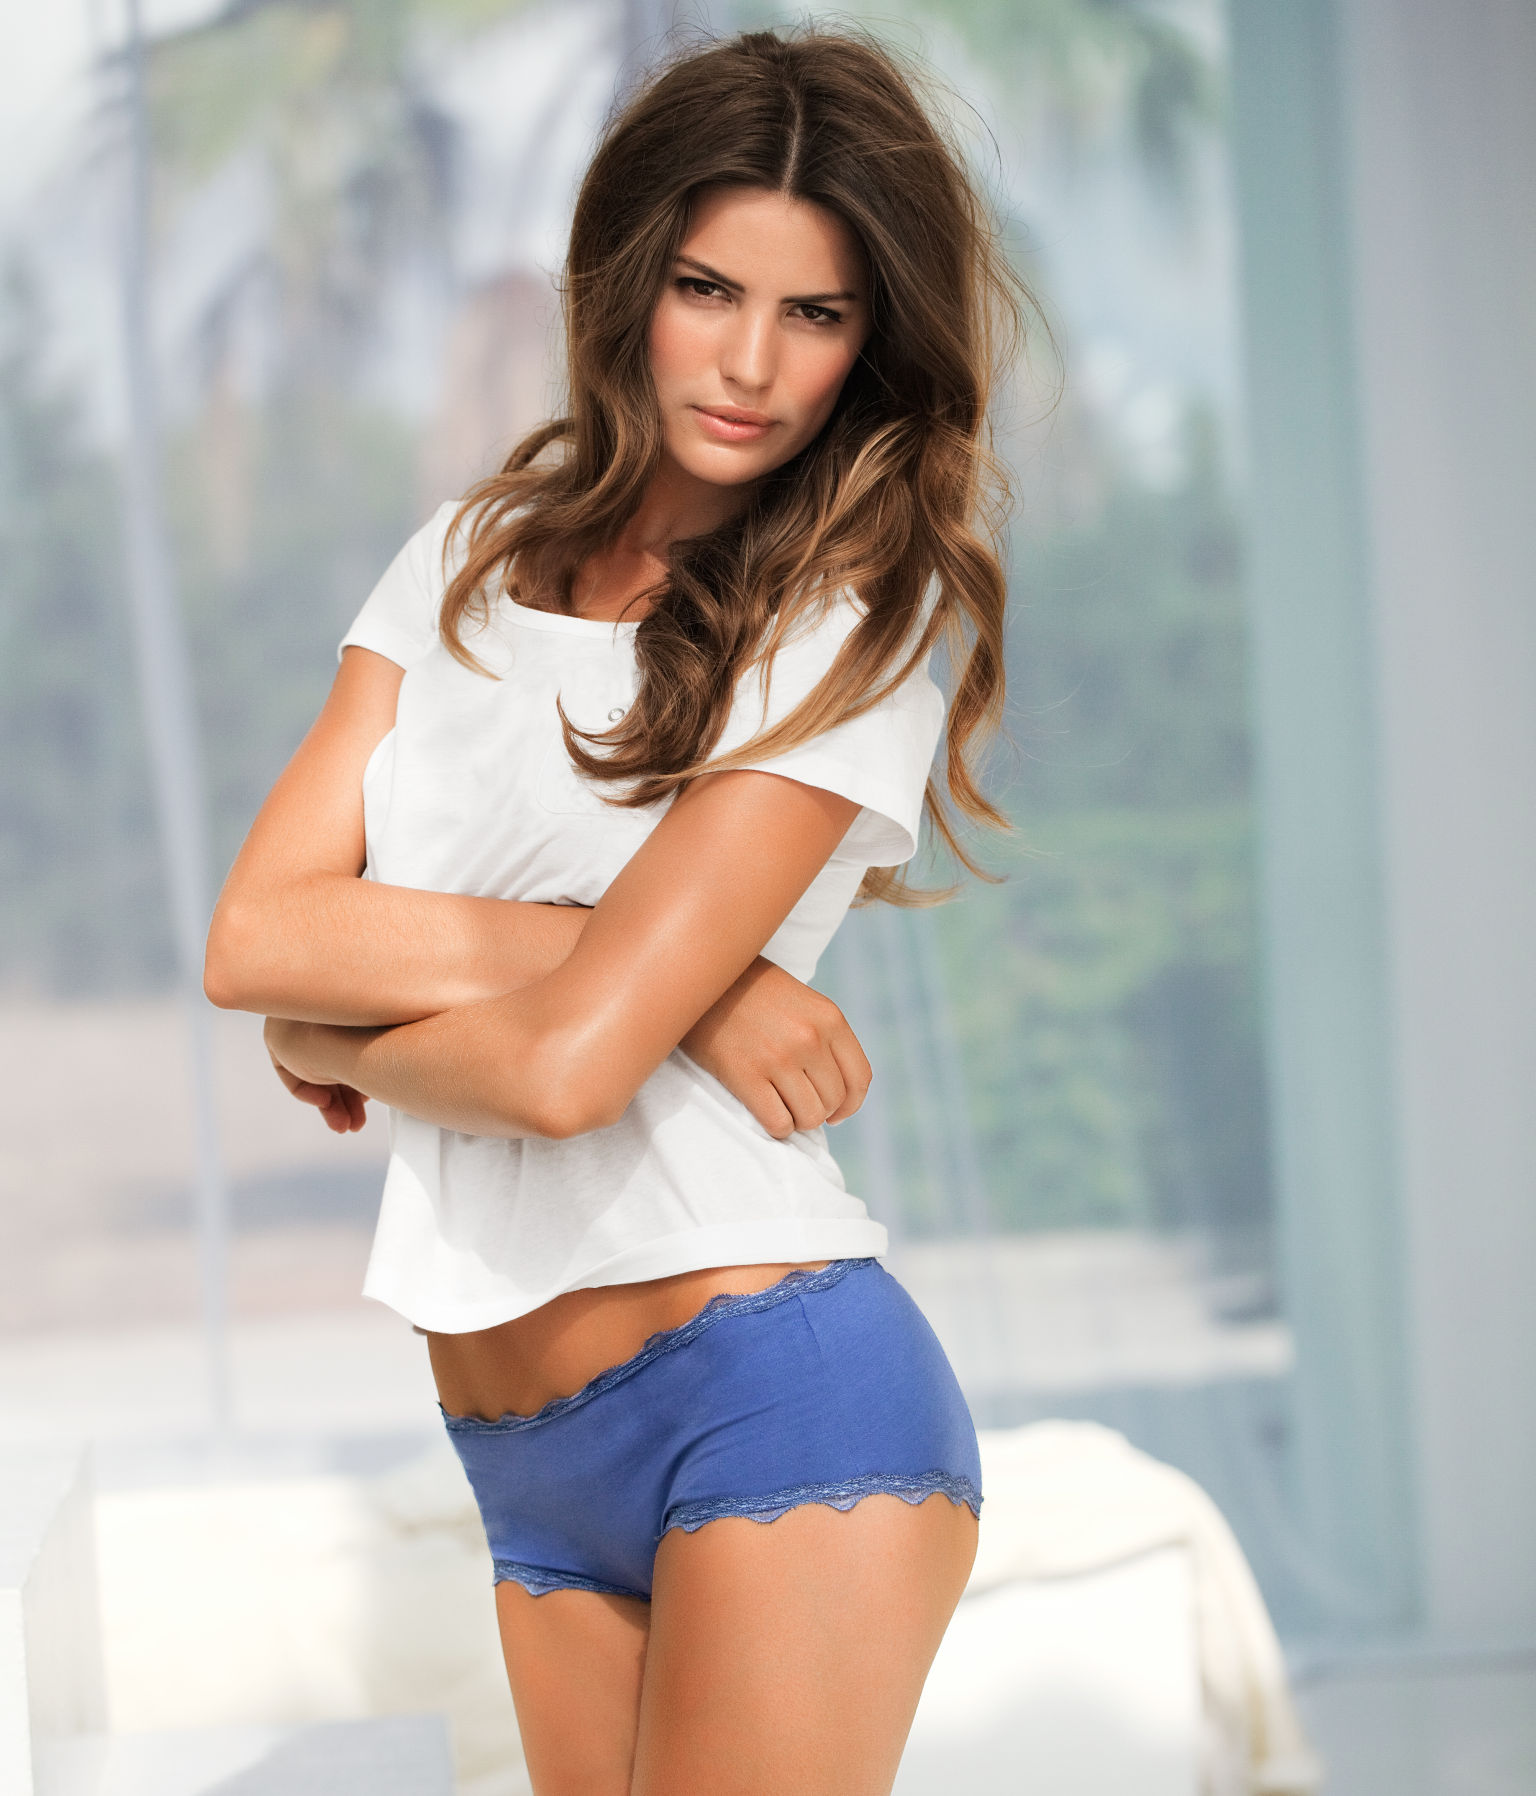 Cameron Russell photo 121 of 376 pics, wallpaper - photo ...